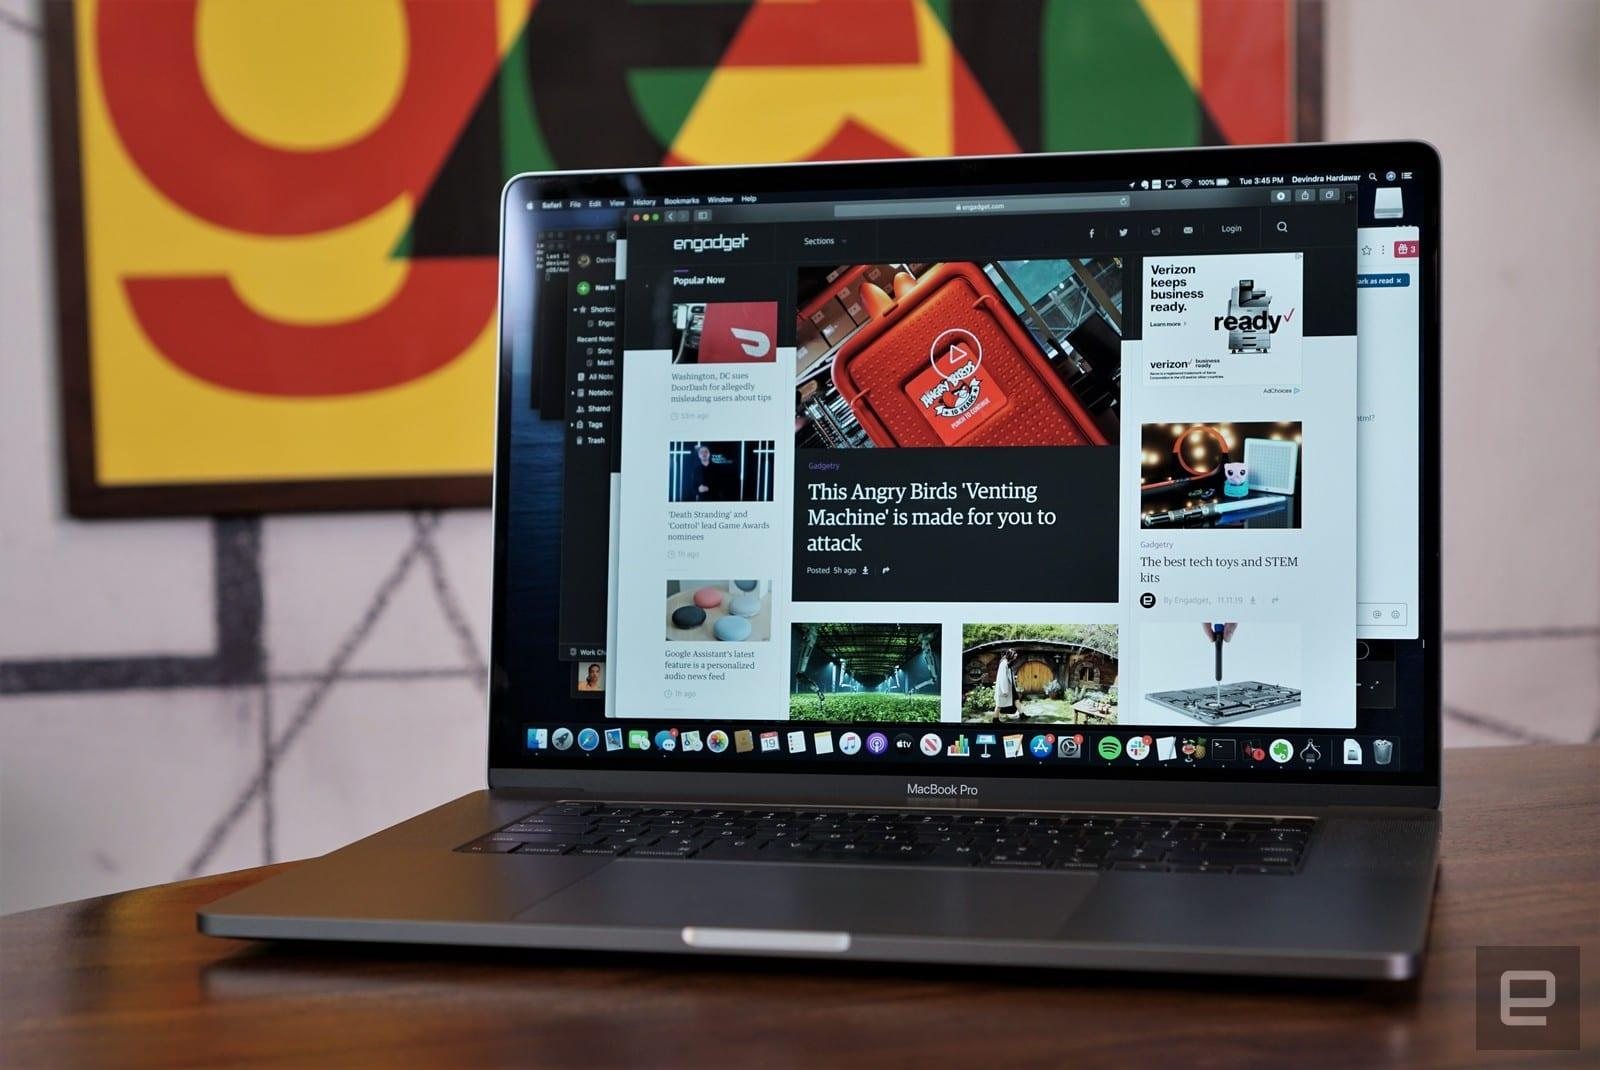 MacBook Pro 16-inch review: The ultimate Apple laptop